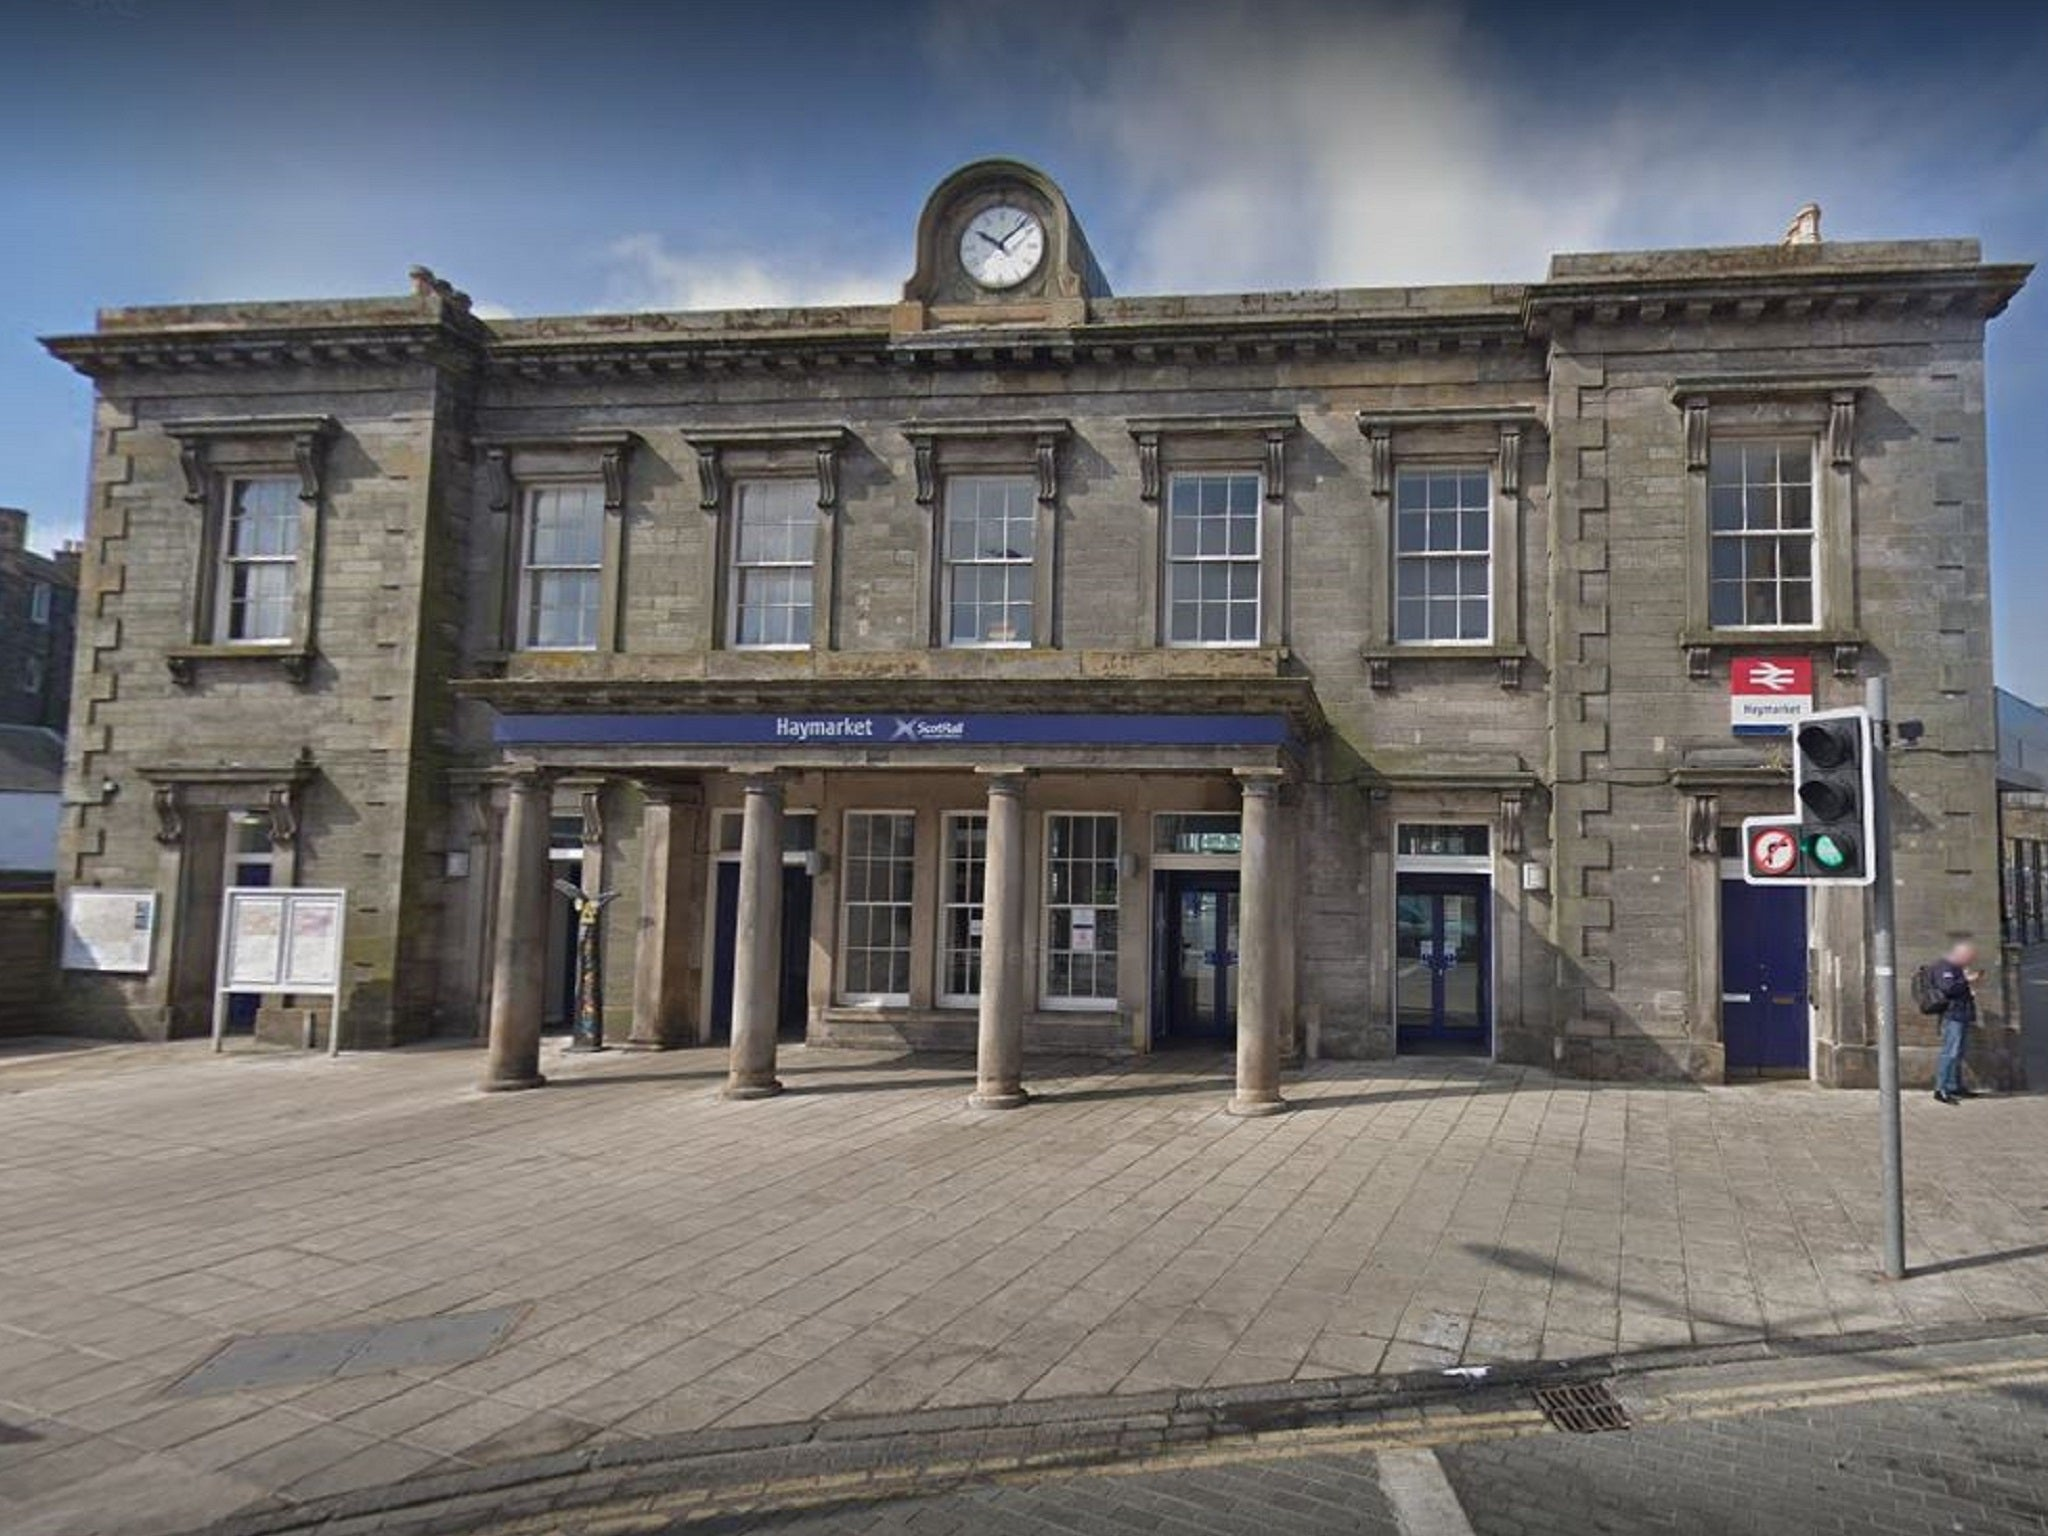 Man fighting for life after being pushed down stairs in train station